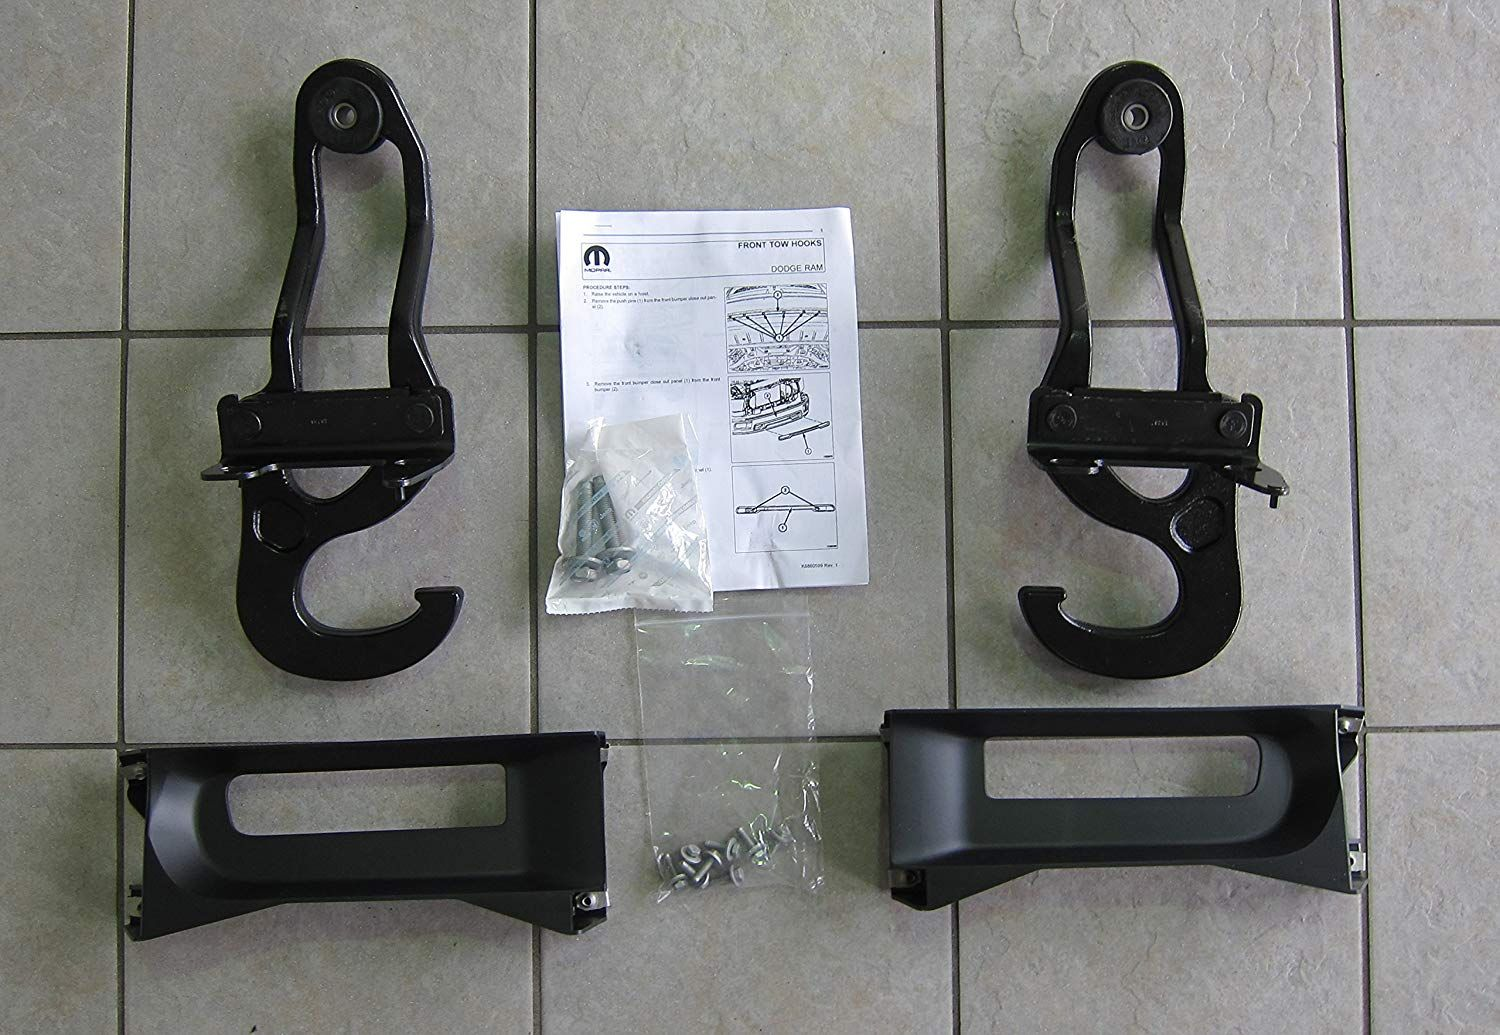 Mopar Dodge Ram 1500 Front Tow Hooks Steel Bumper Bezels Oem Price Curt 4way Round To Flat Trailer Wire Adapter Sharptruckcom 8444